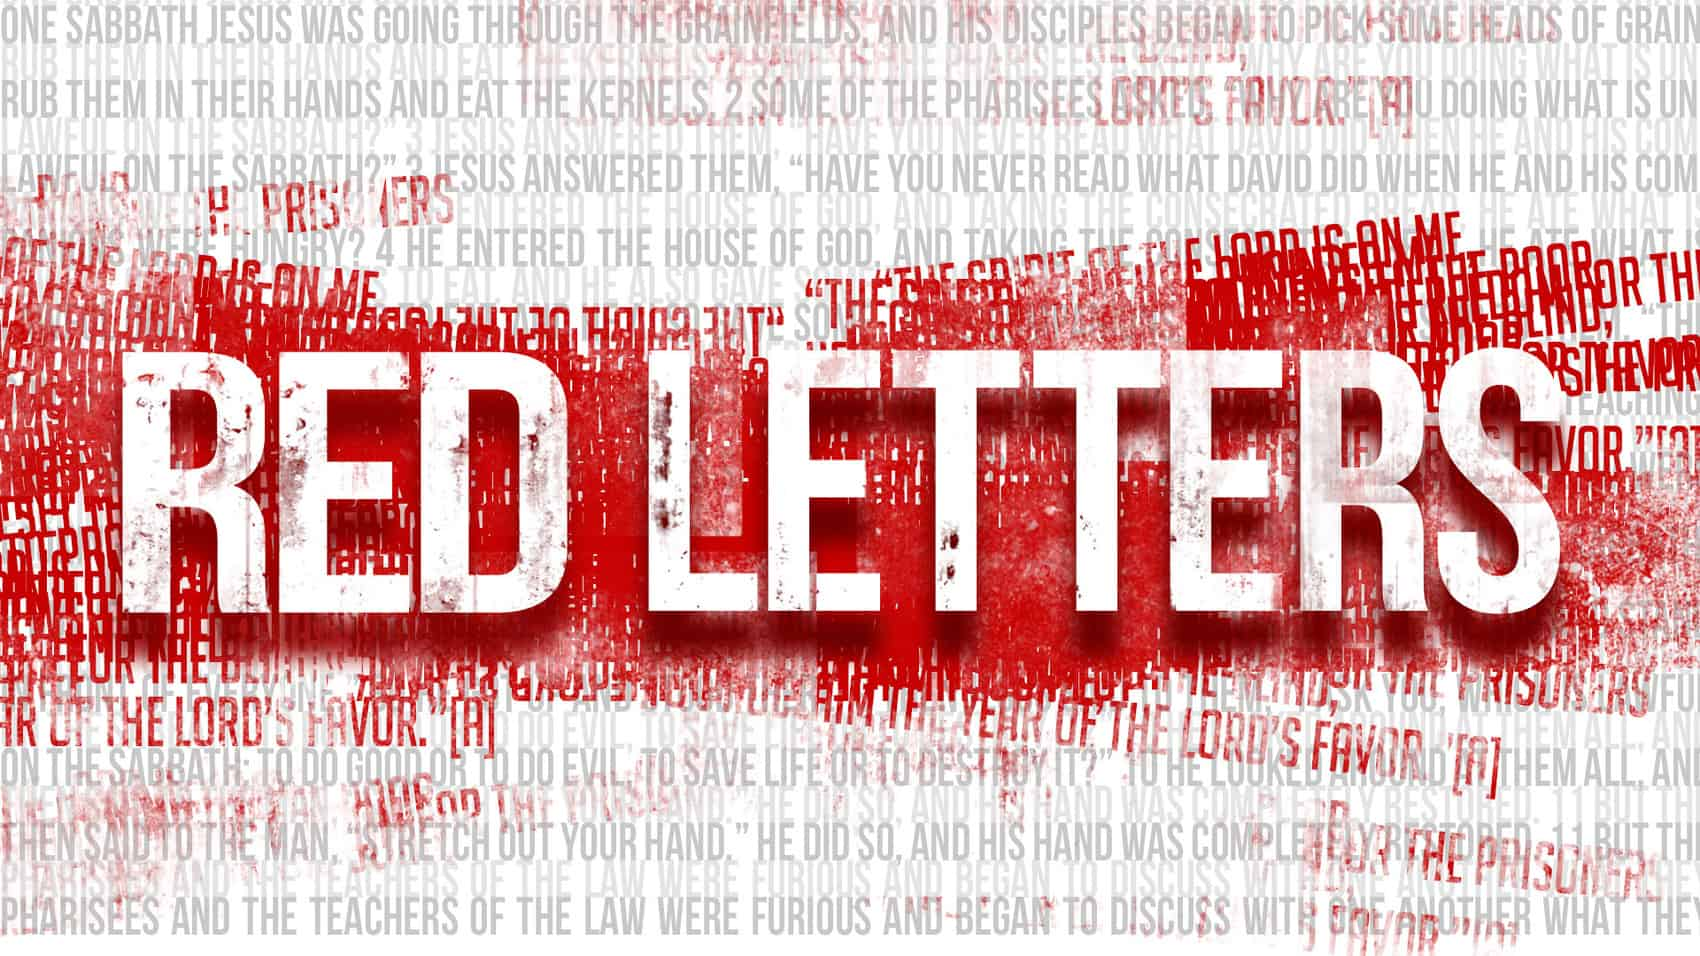 """Red Letters"" Part 5: Matthew 22:34-40"